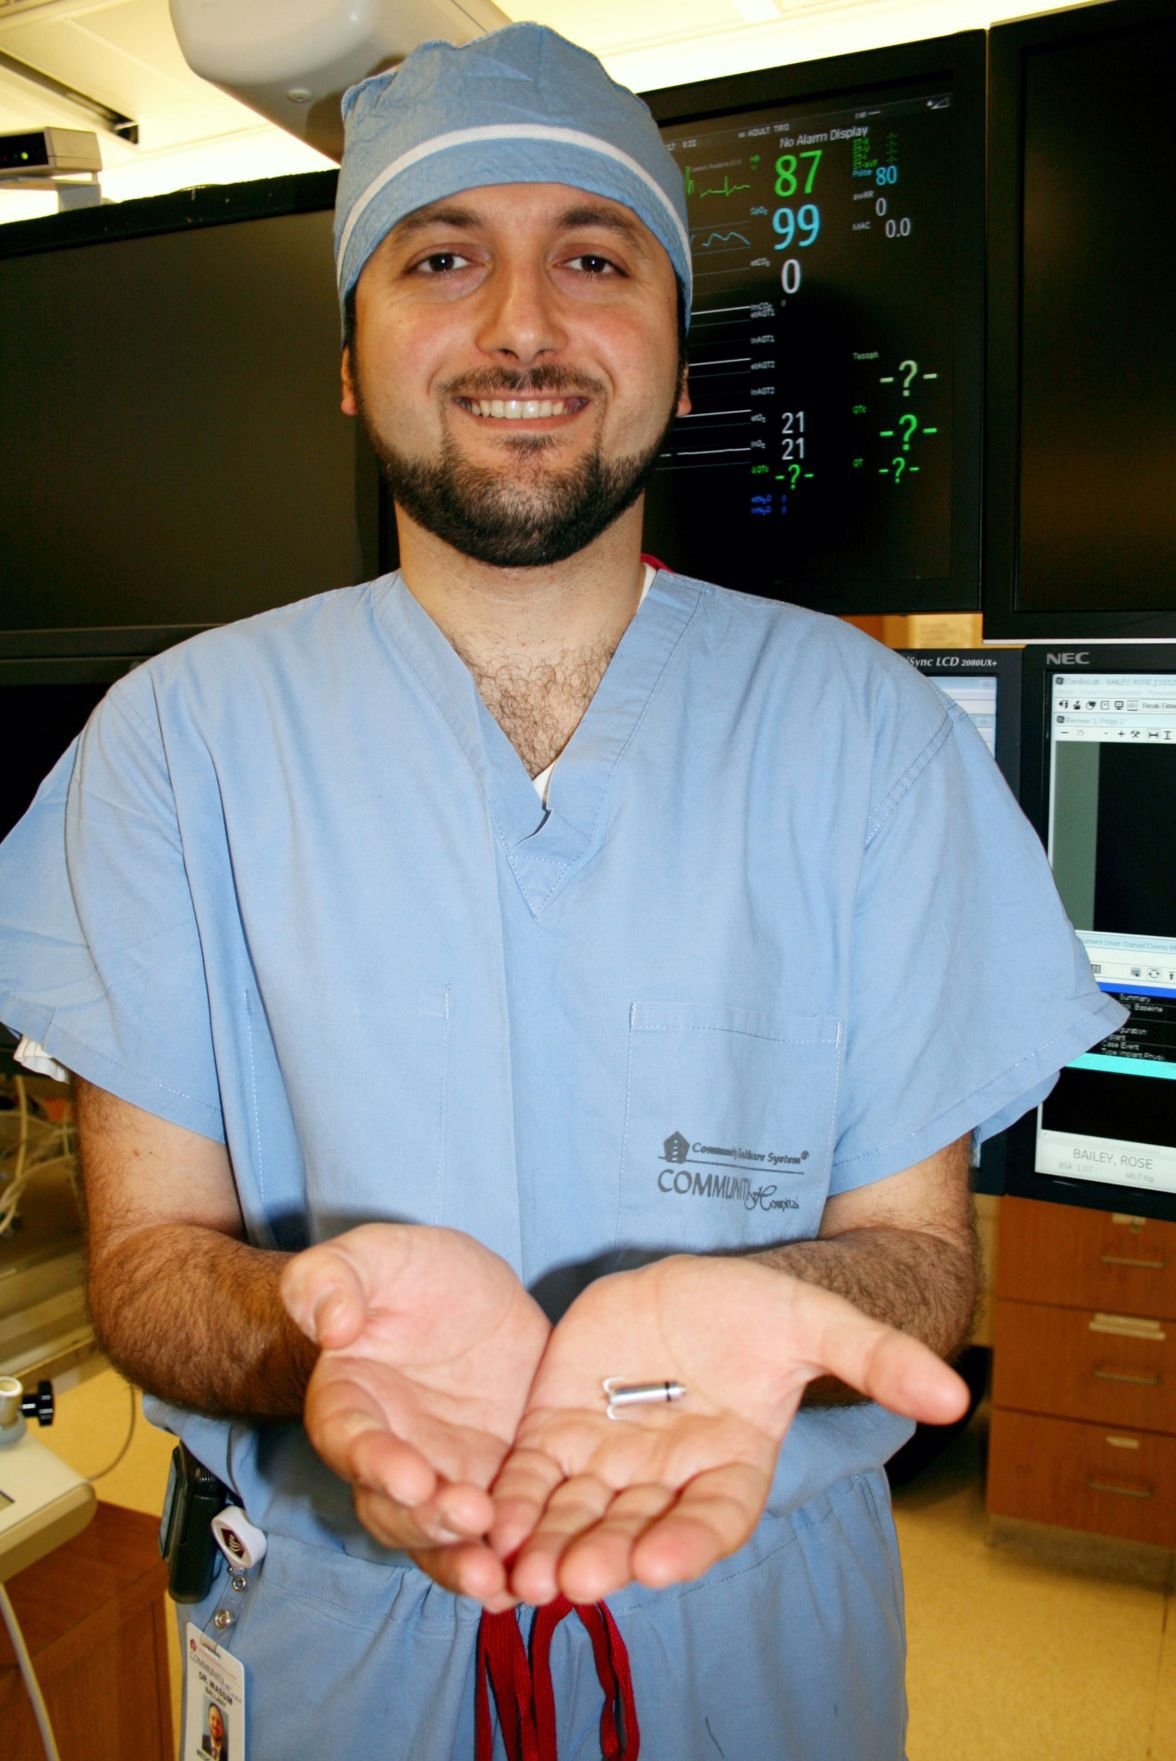 NWI hospitals step up cardiac care game advanced new technologies, minimally invasive procedures